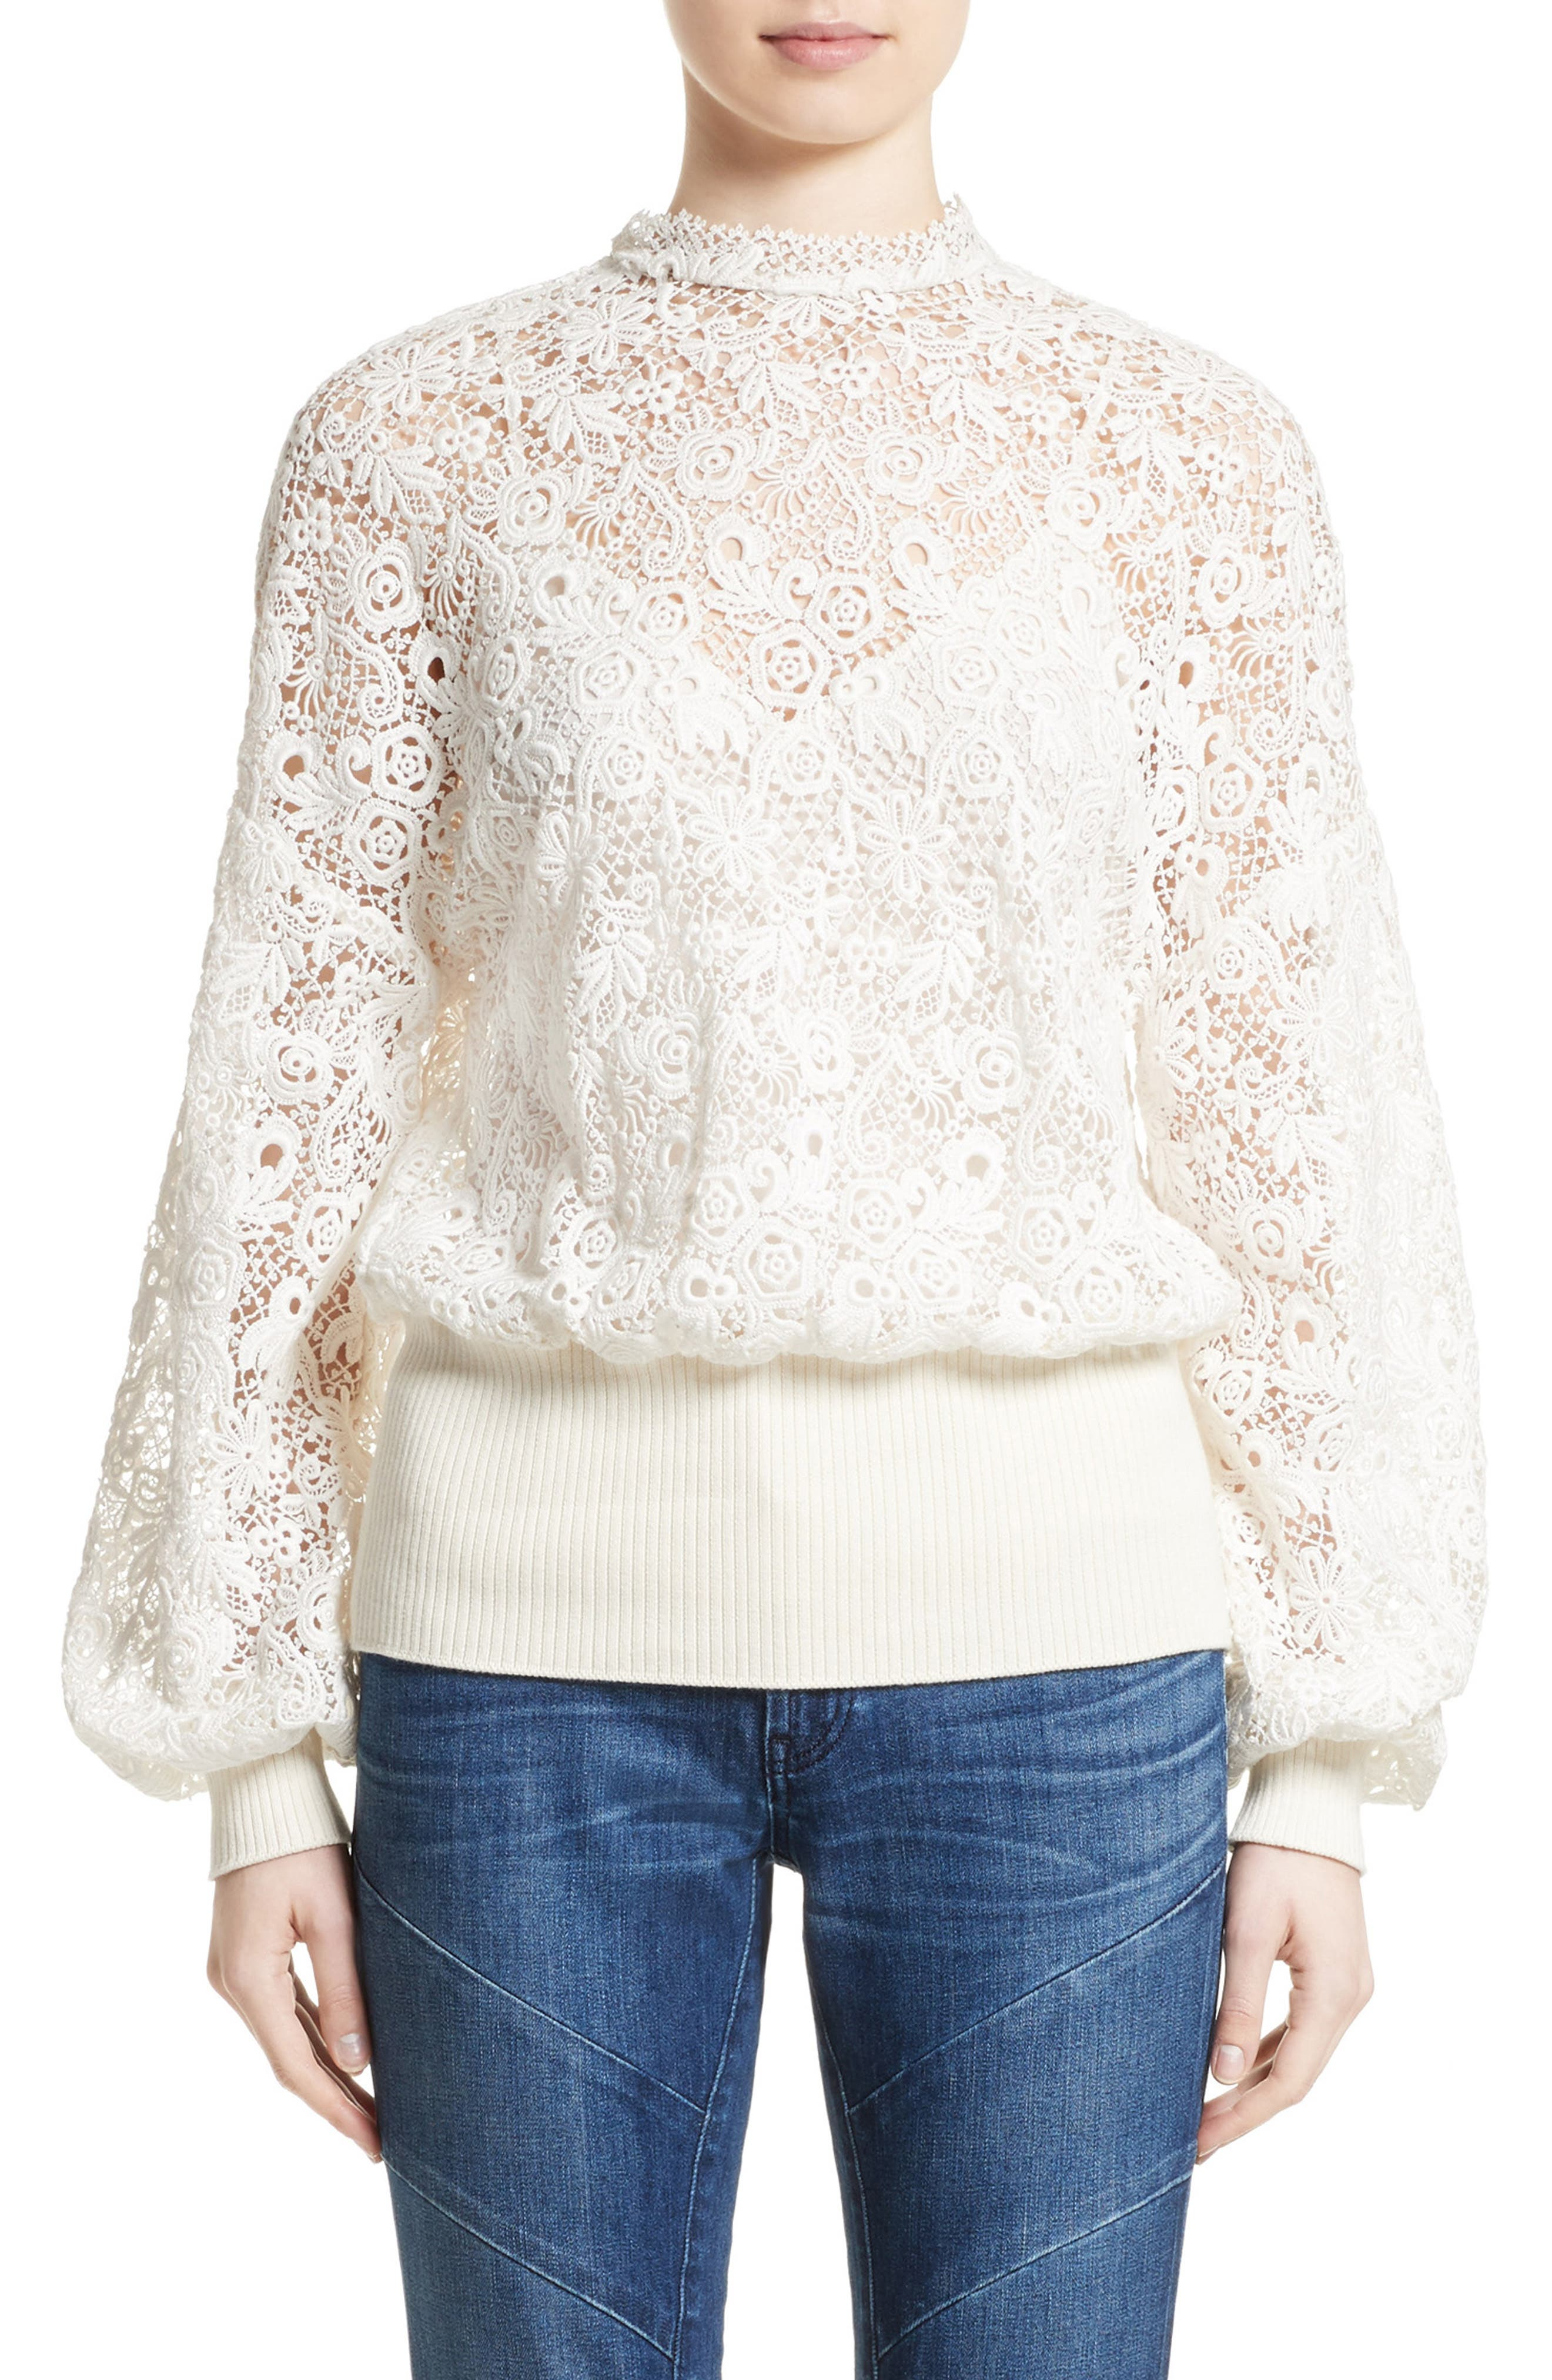 Lantana Top,                         Main,                         color, Antique White